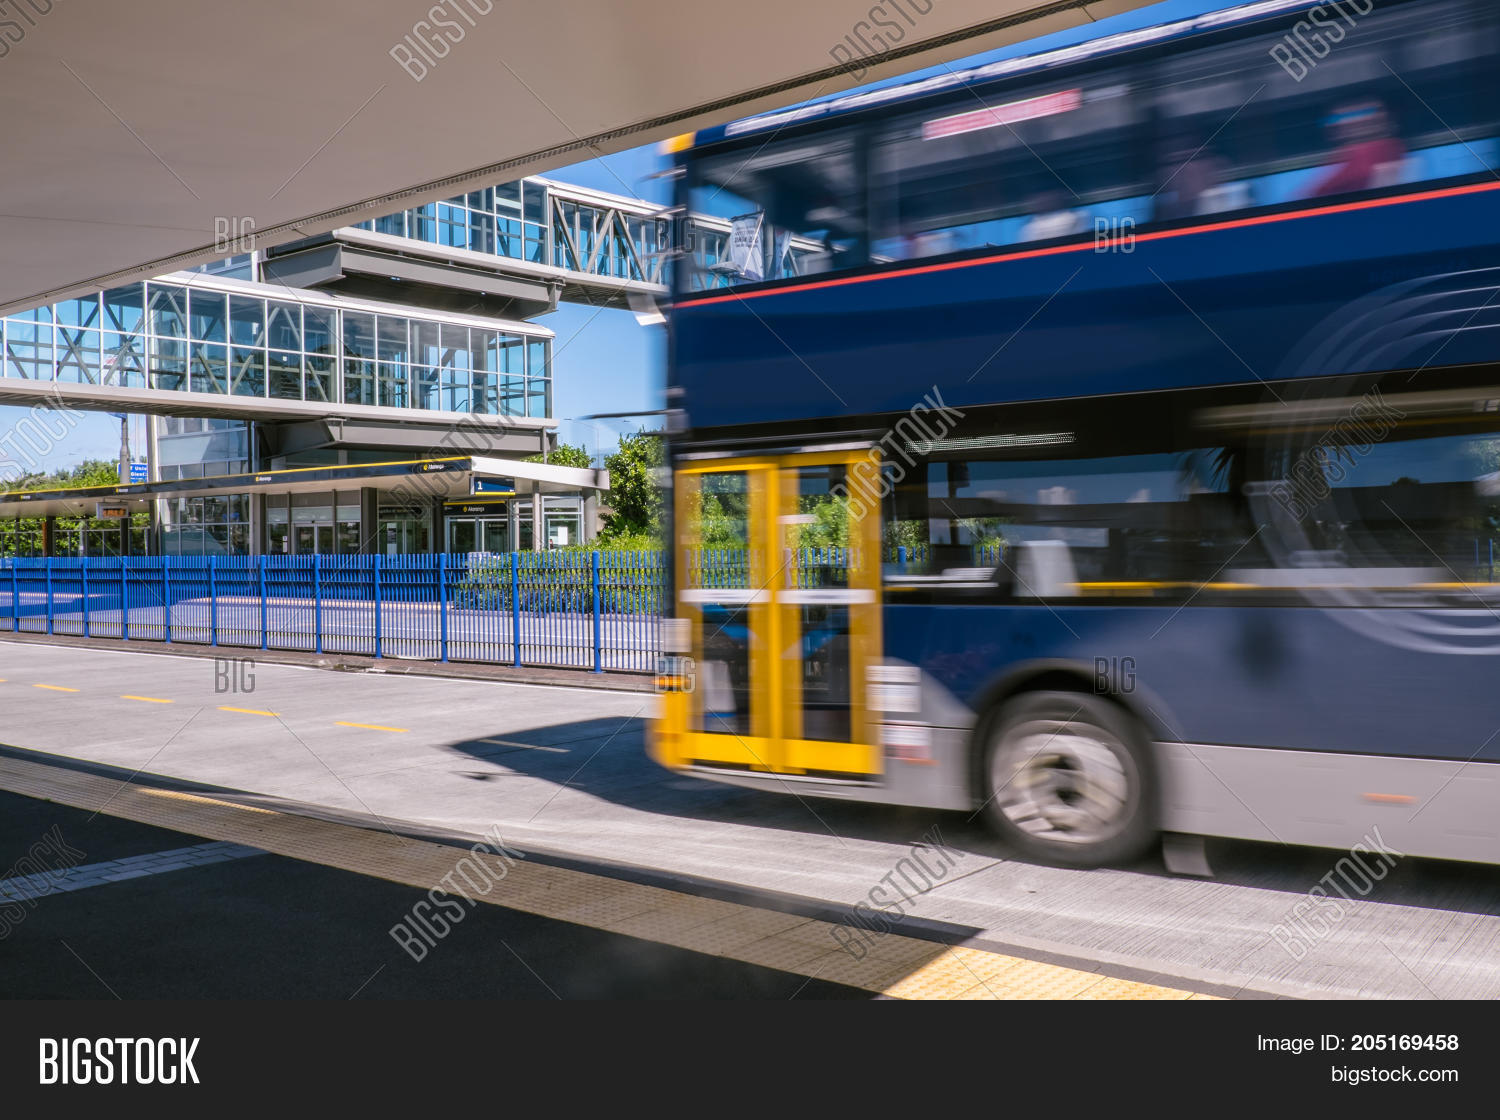 Blurred Moving Bus Image & Photo (Free Trial) | Bigstock